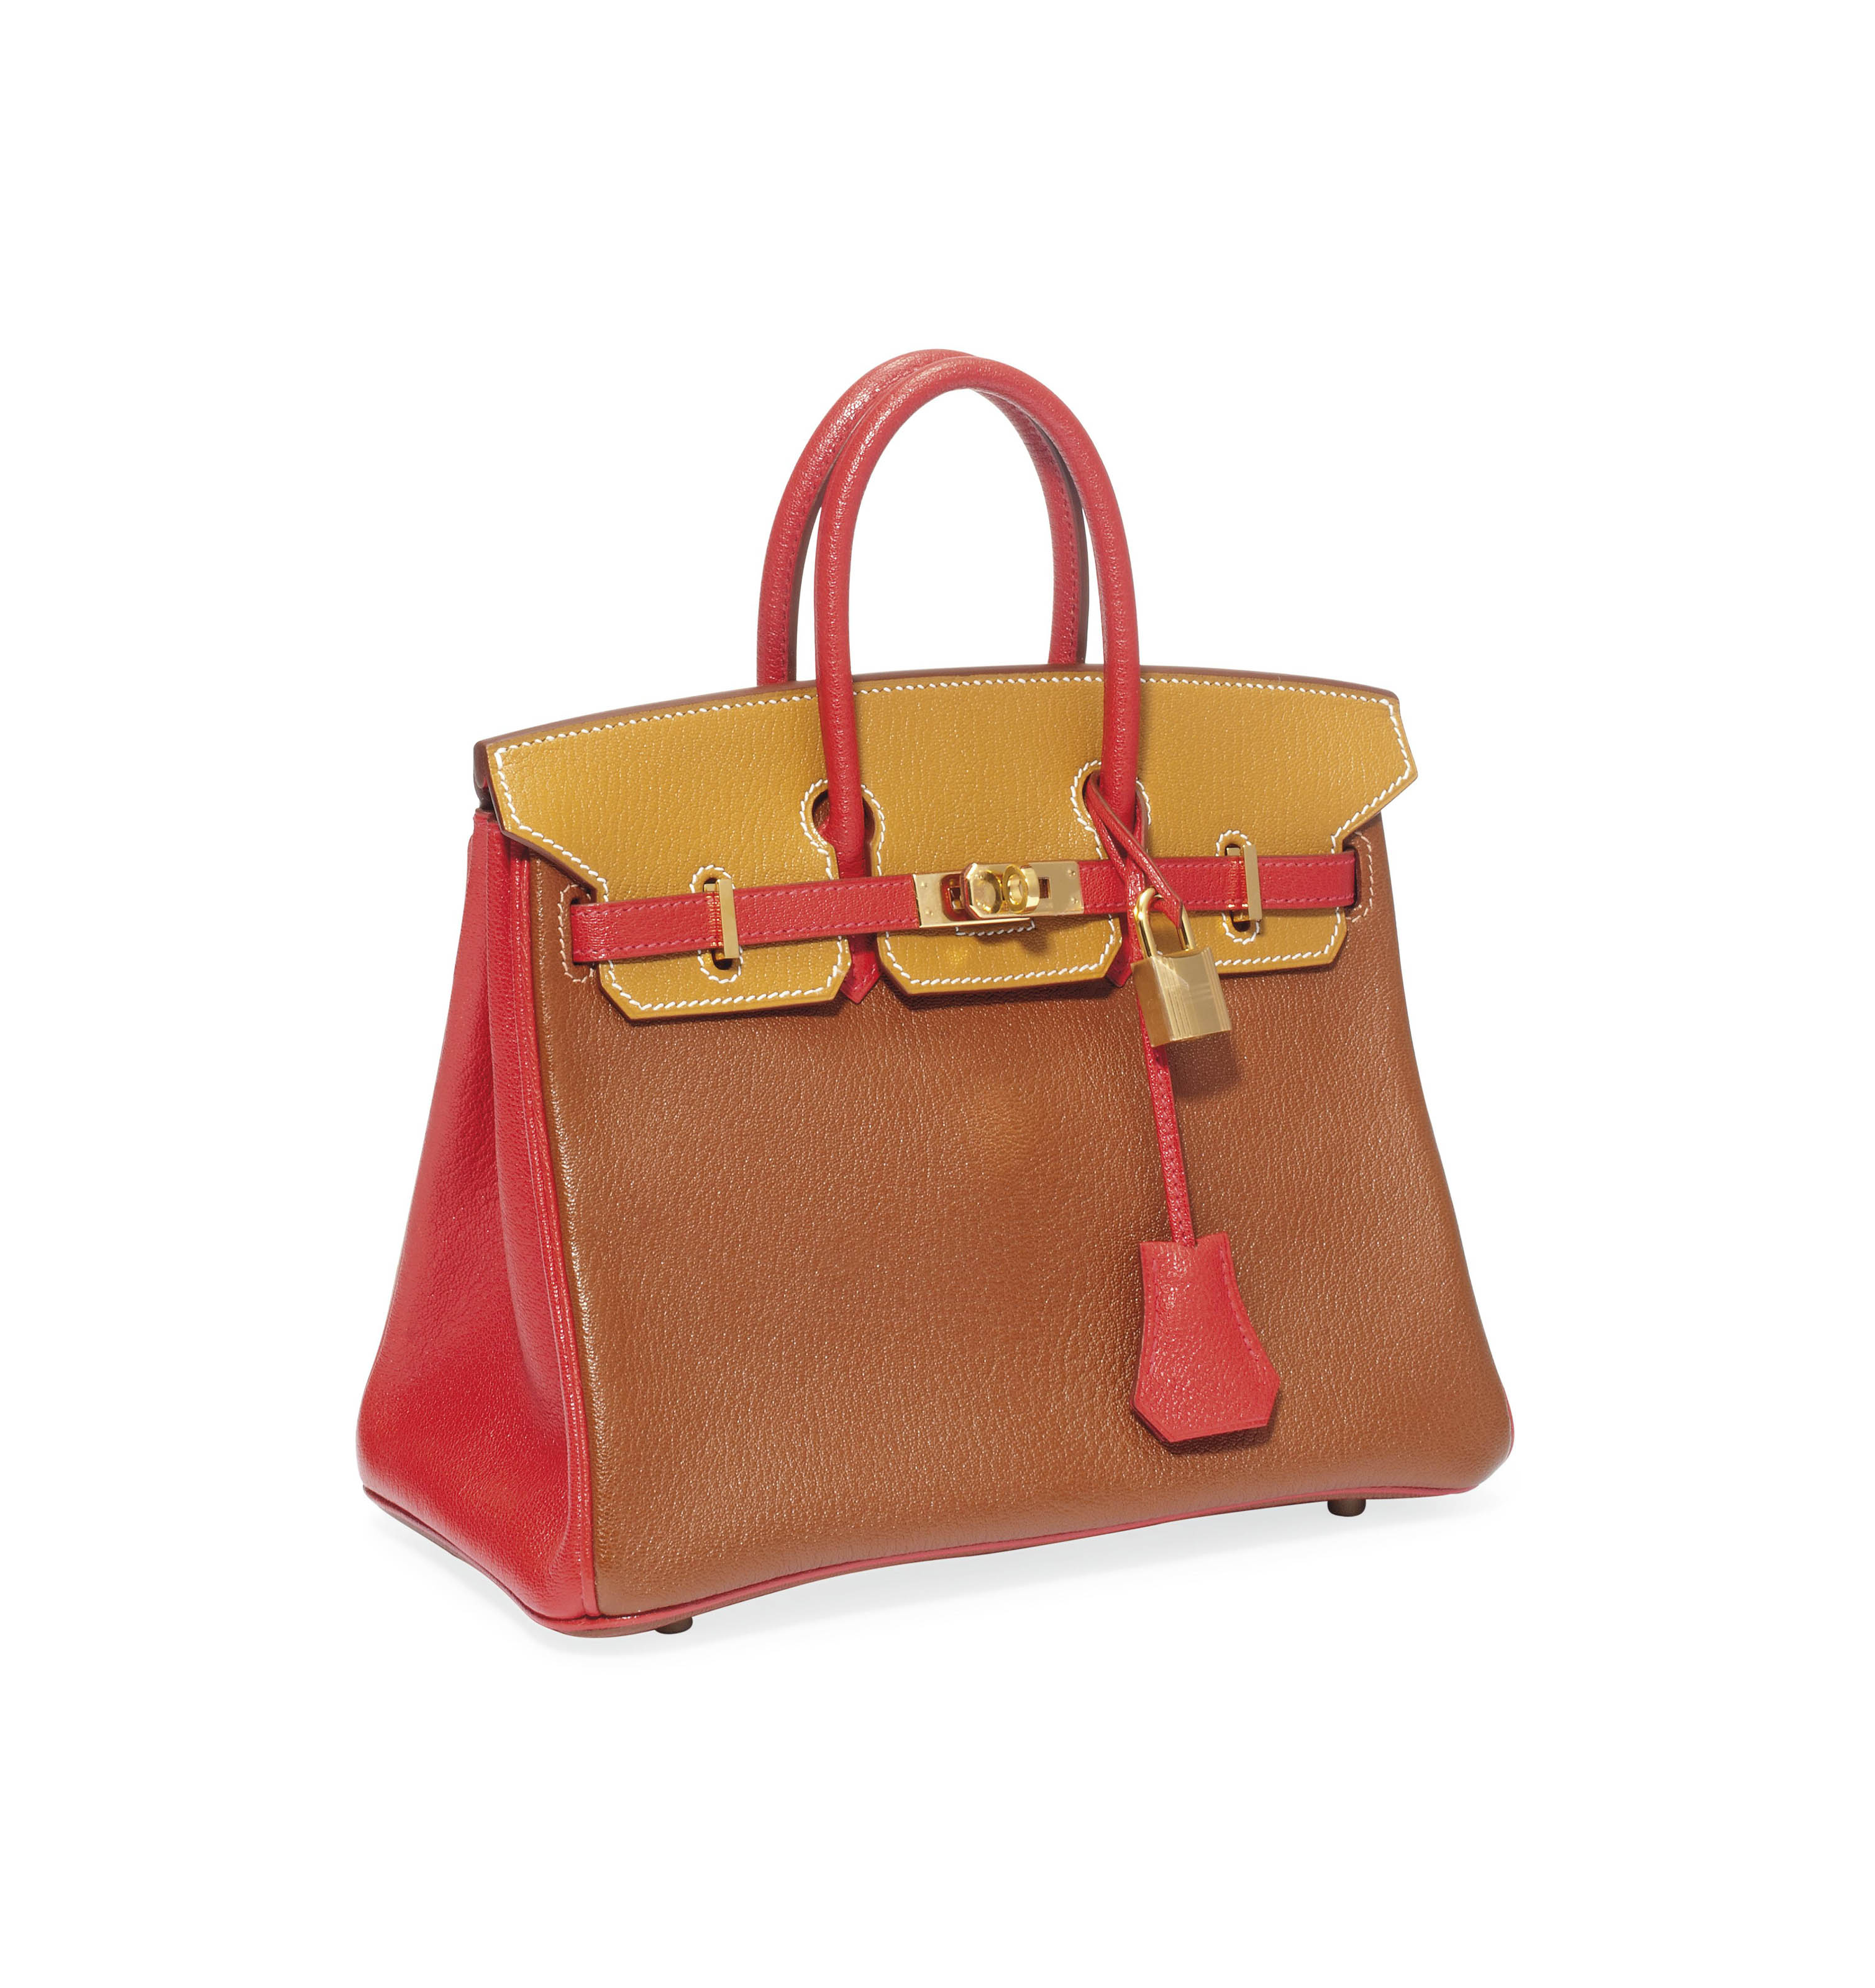 A TRI-COLOUR RED, GOLD AND BROWN GOAT-SKIN LEATHER 'BIRKIN' BAG